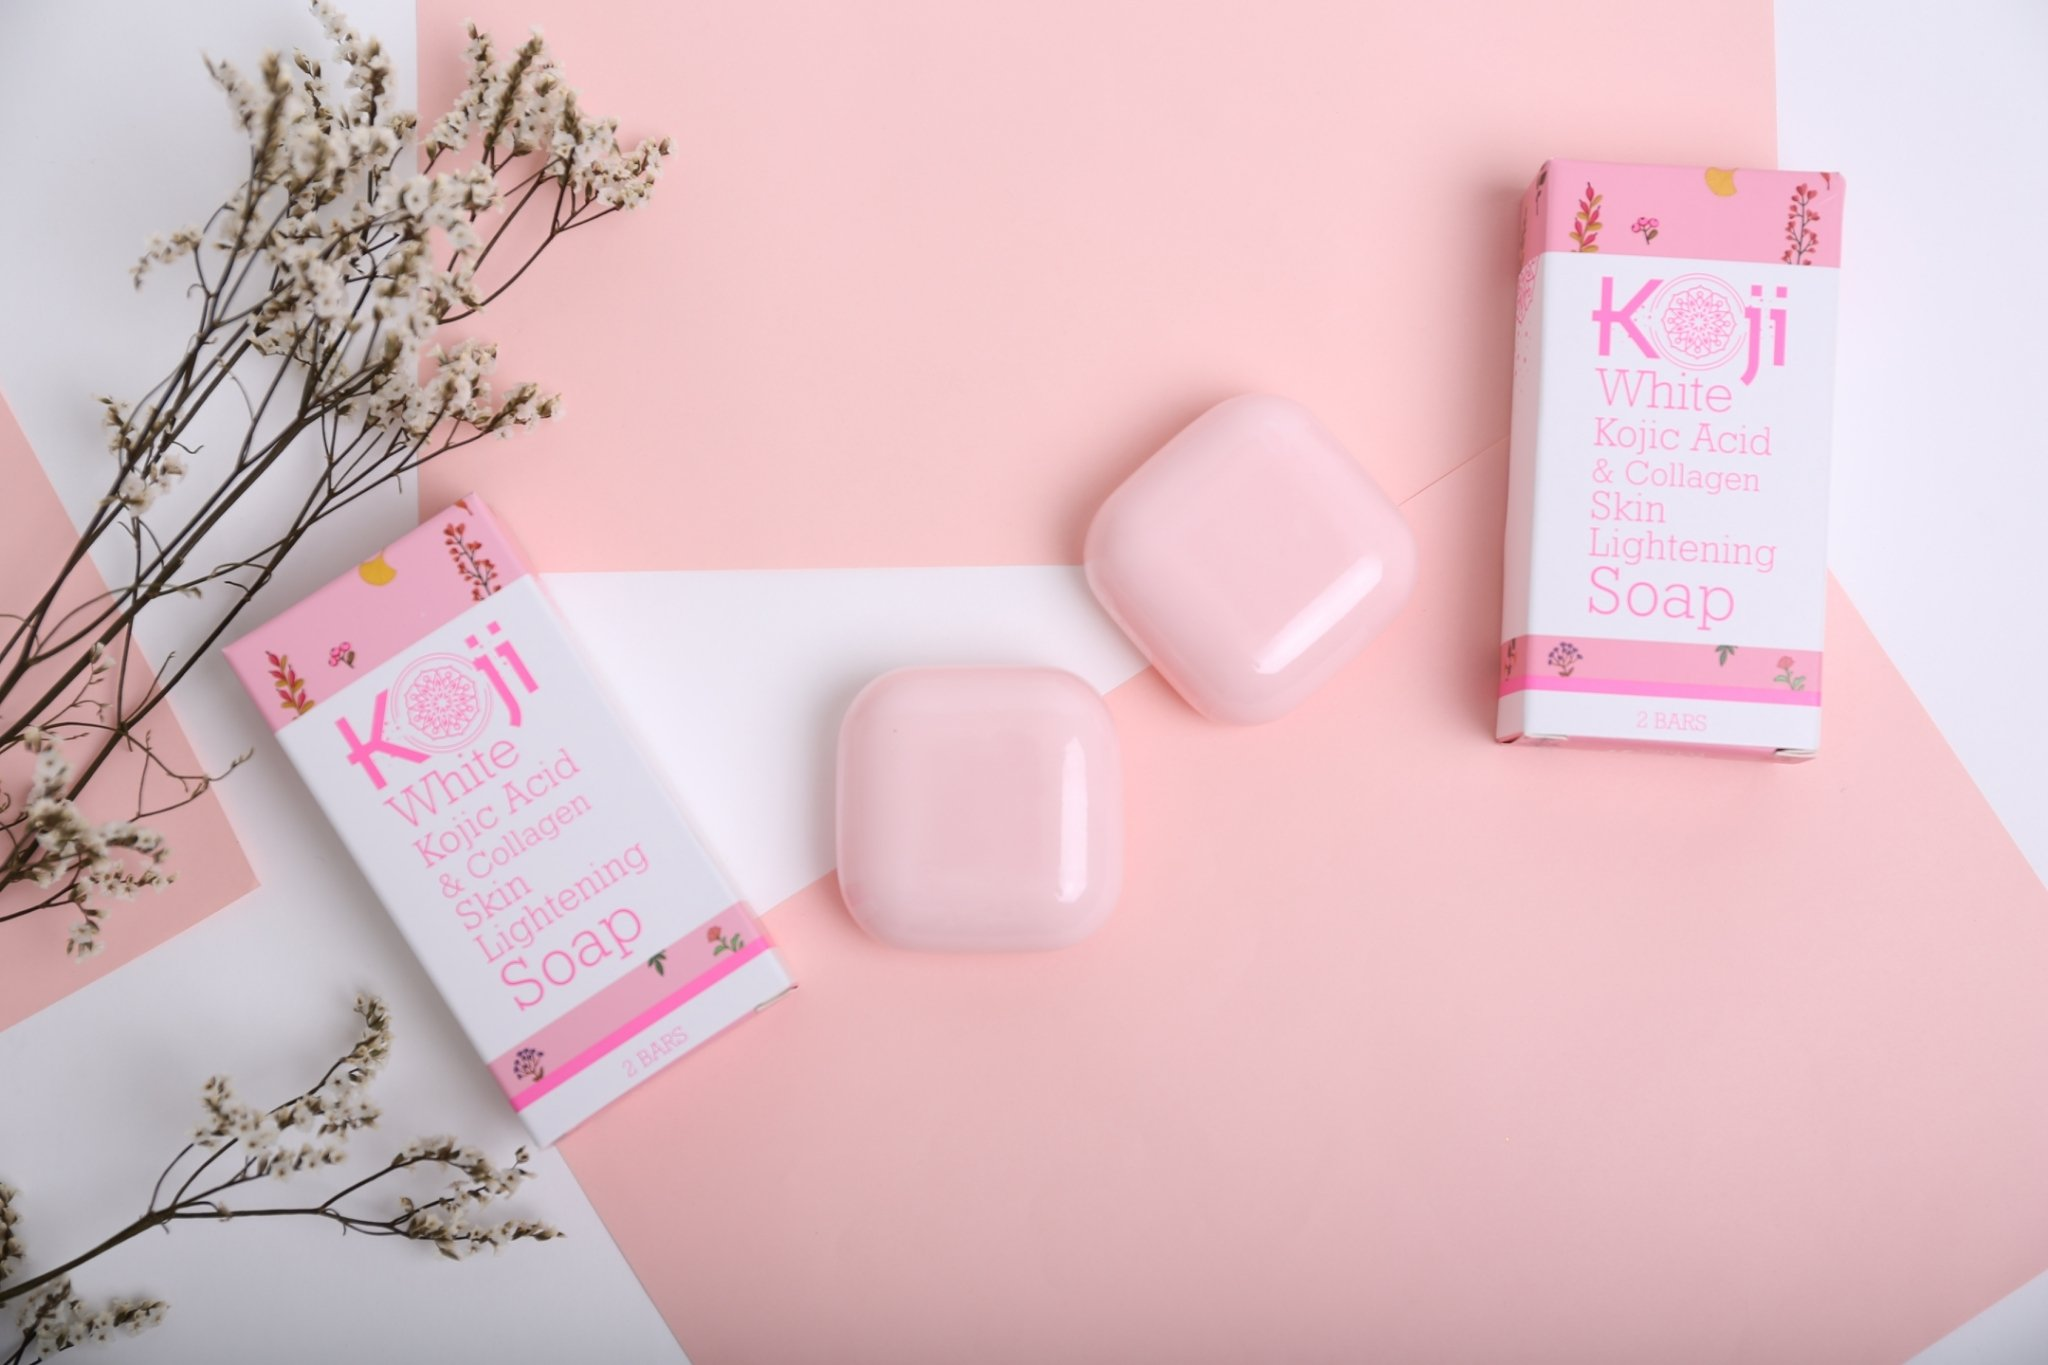 Kojic Acid & Collagen Skin Lightening Soap (2.82 oz/2 Bars) – Natural Skin Brightening For Even Complexion – Moisturizes, Reduces Acne Scars & Wrinkles, Fades Dark Or Red Spots & Freckles by koji white (Image #2)